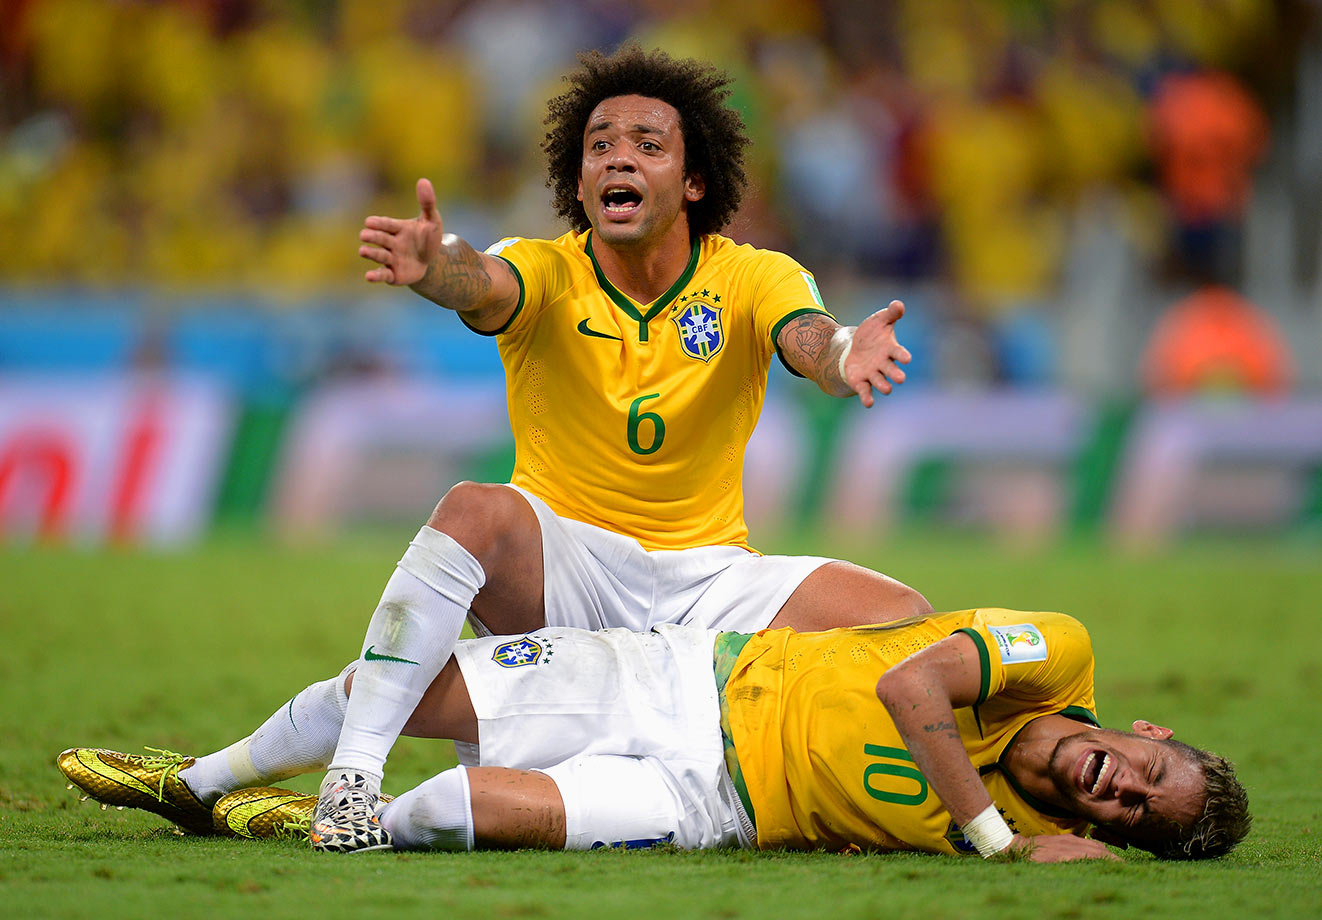 Neymar lies injured while teammate Marcelo appeals during Brazil's World Cup quarterfinal match against Colombia on July 4, 2014 at Estadio Castelao in Fortaleza, Brazil.